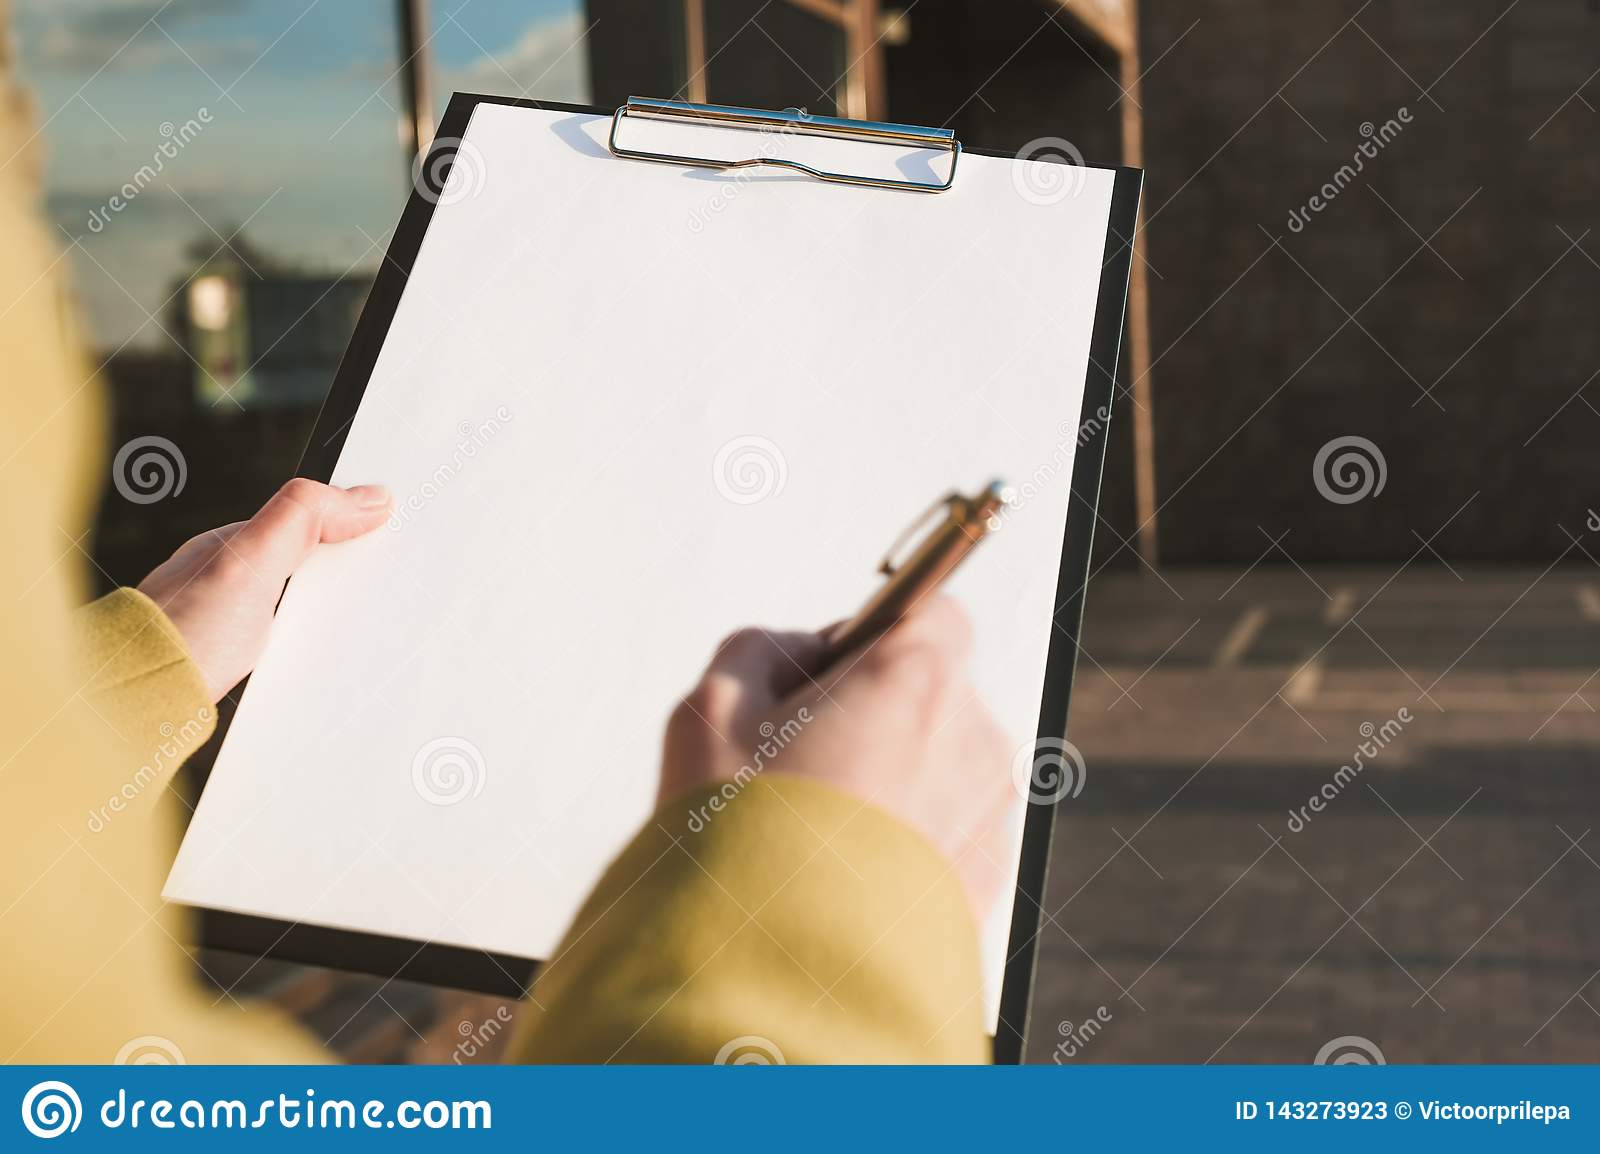 Mock Up of the tablet for the paper in the hands of the girl against the background of the glass center